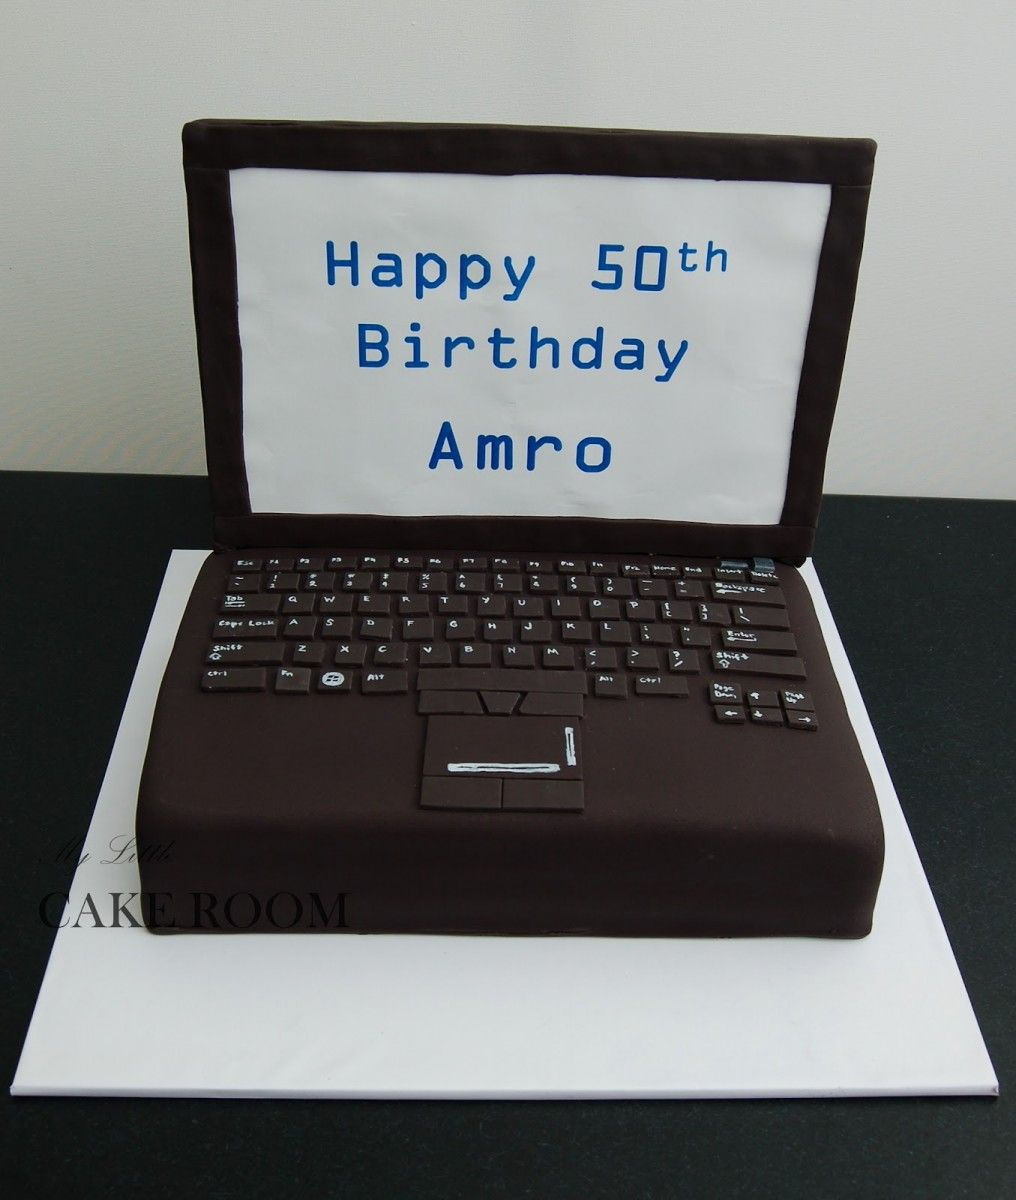 10 Awesome Computer Cake Decorating Ideas 8 Cake Design And